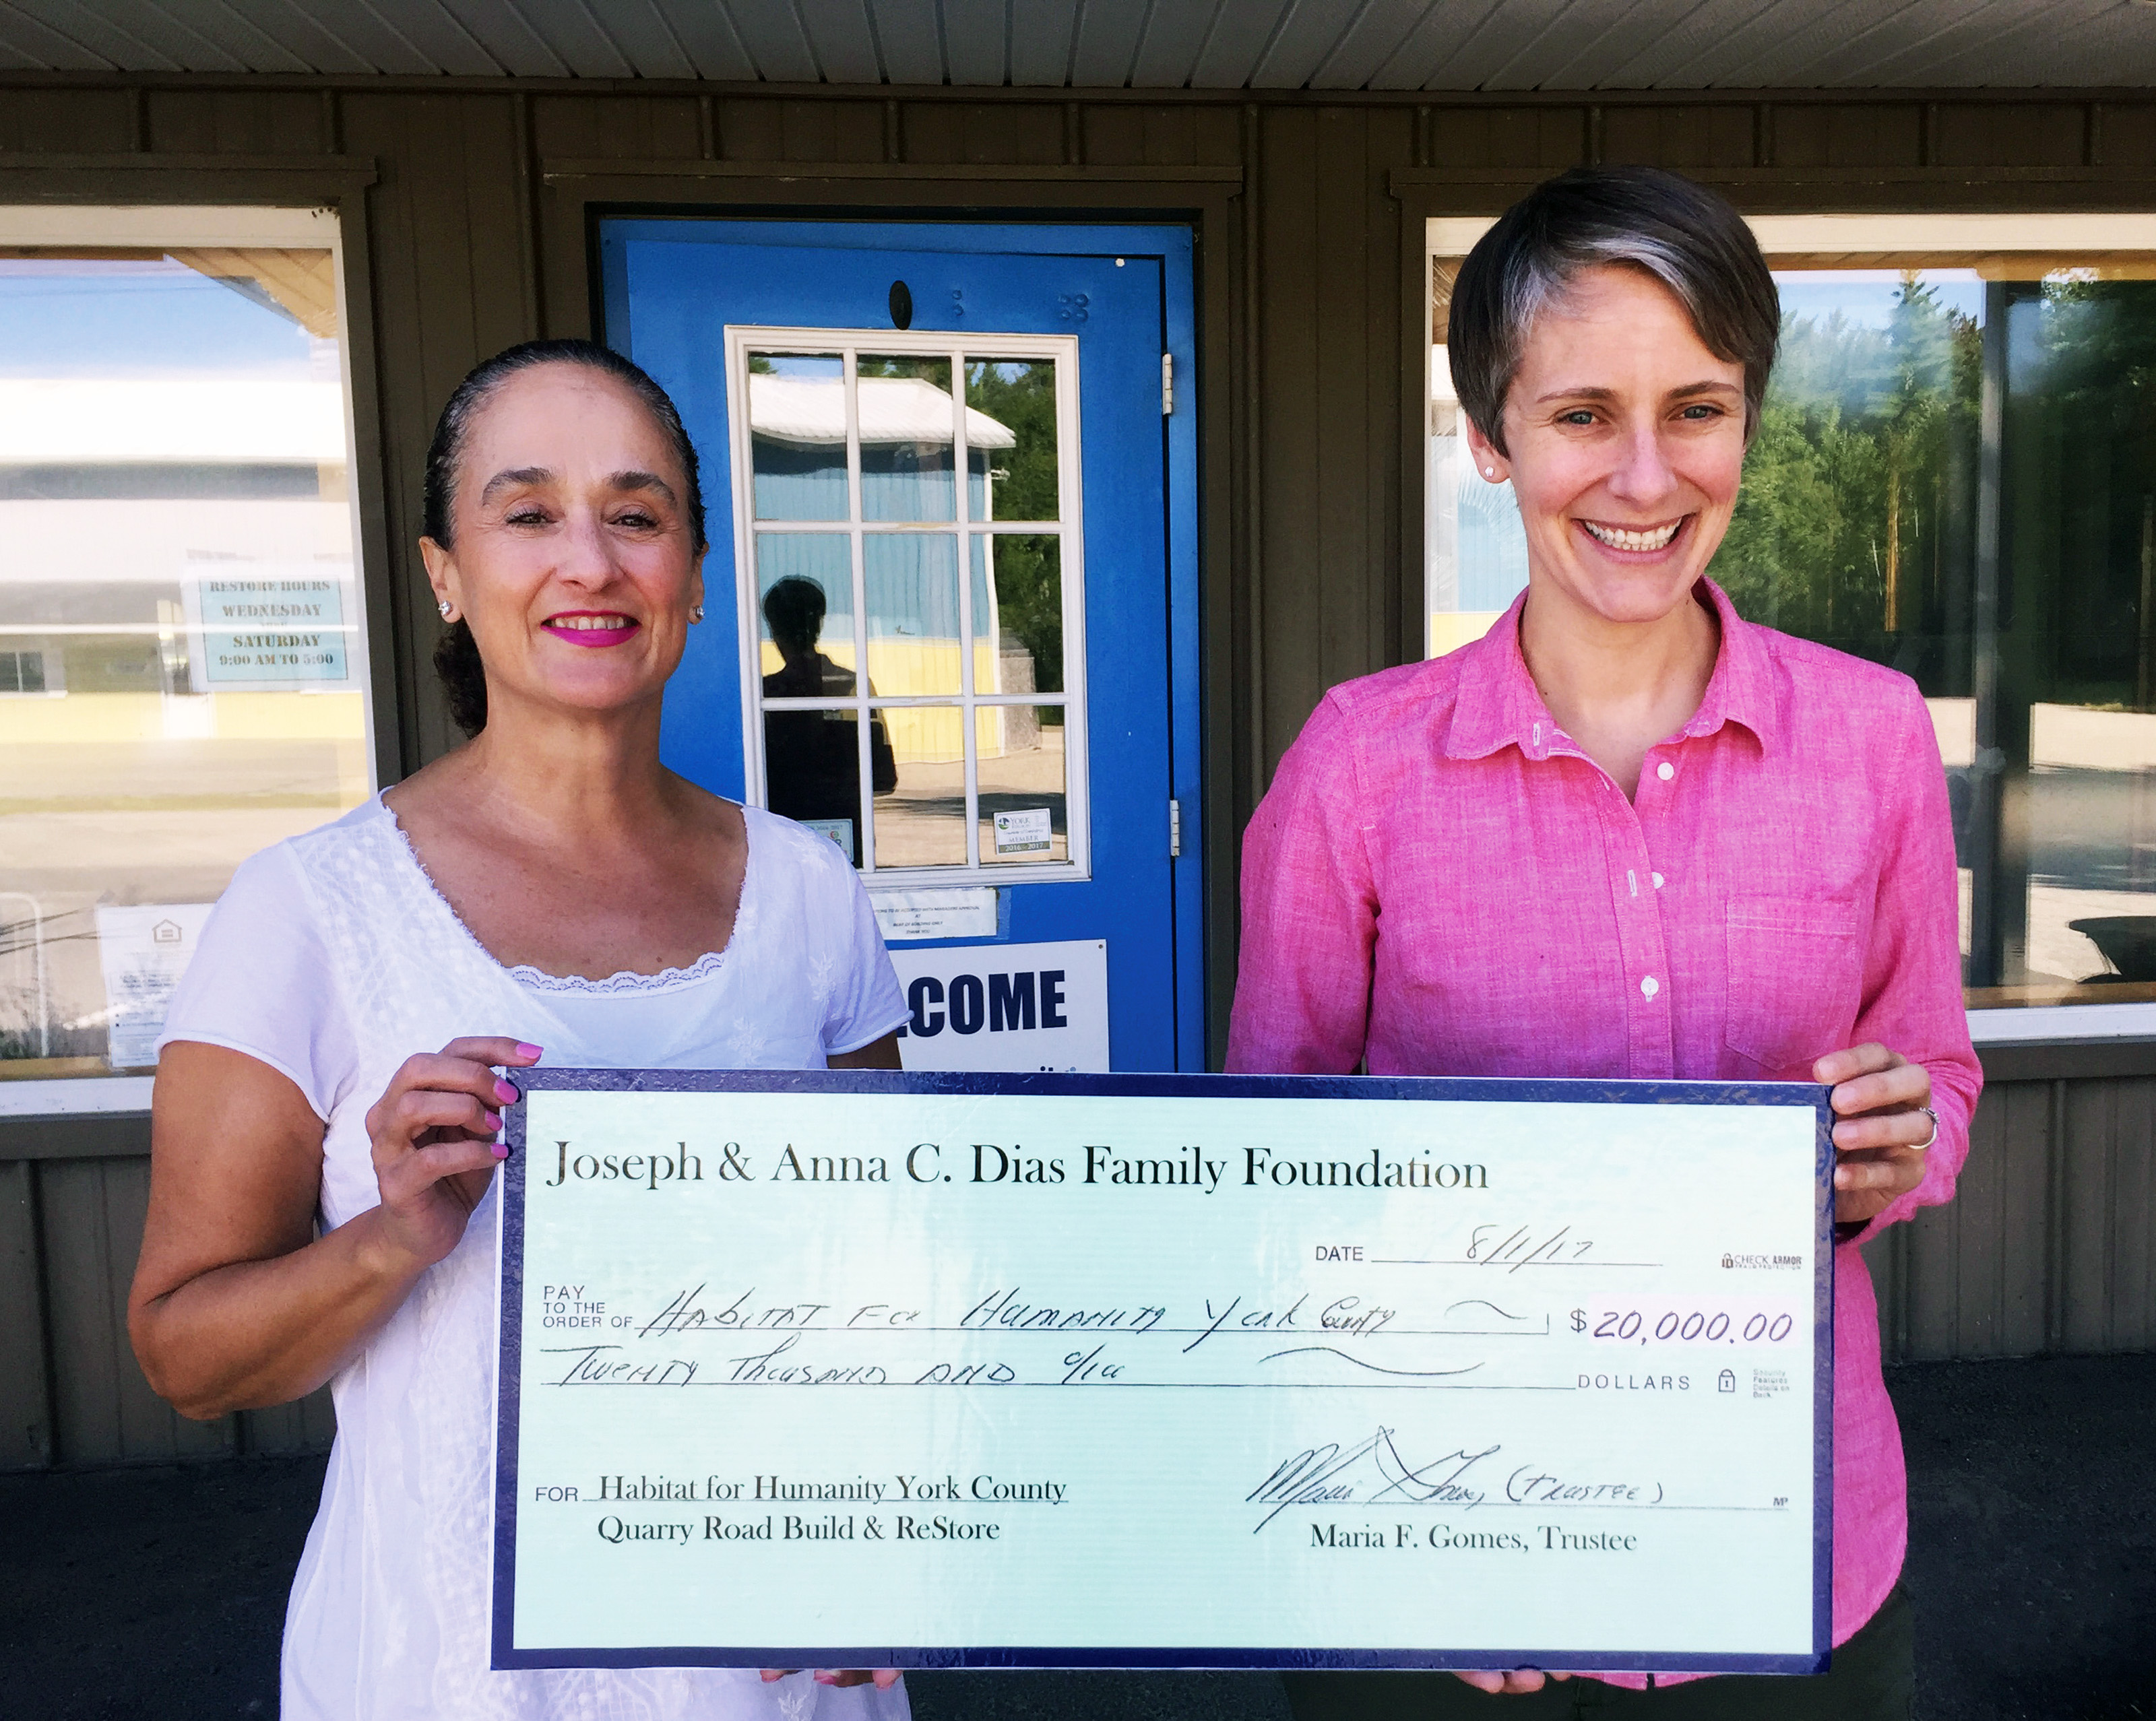 Janice Dias, left, presents a check for $20,000 to Amy D. Nucci, Habitat for Humanity of York County's Executive Director. The donation from the Joseph and Anna C. Dias Family Foundation will support Habitat's Quarry Road Build in Wells and the Habitat ReStore in Kennebunk. SUBMITTED PHOTO